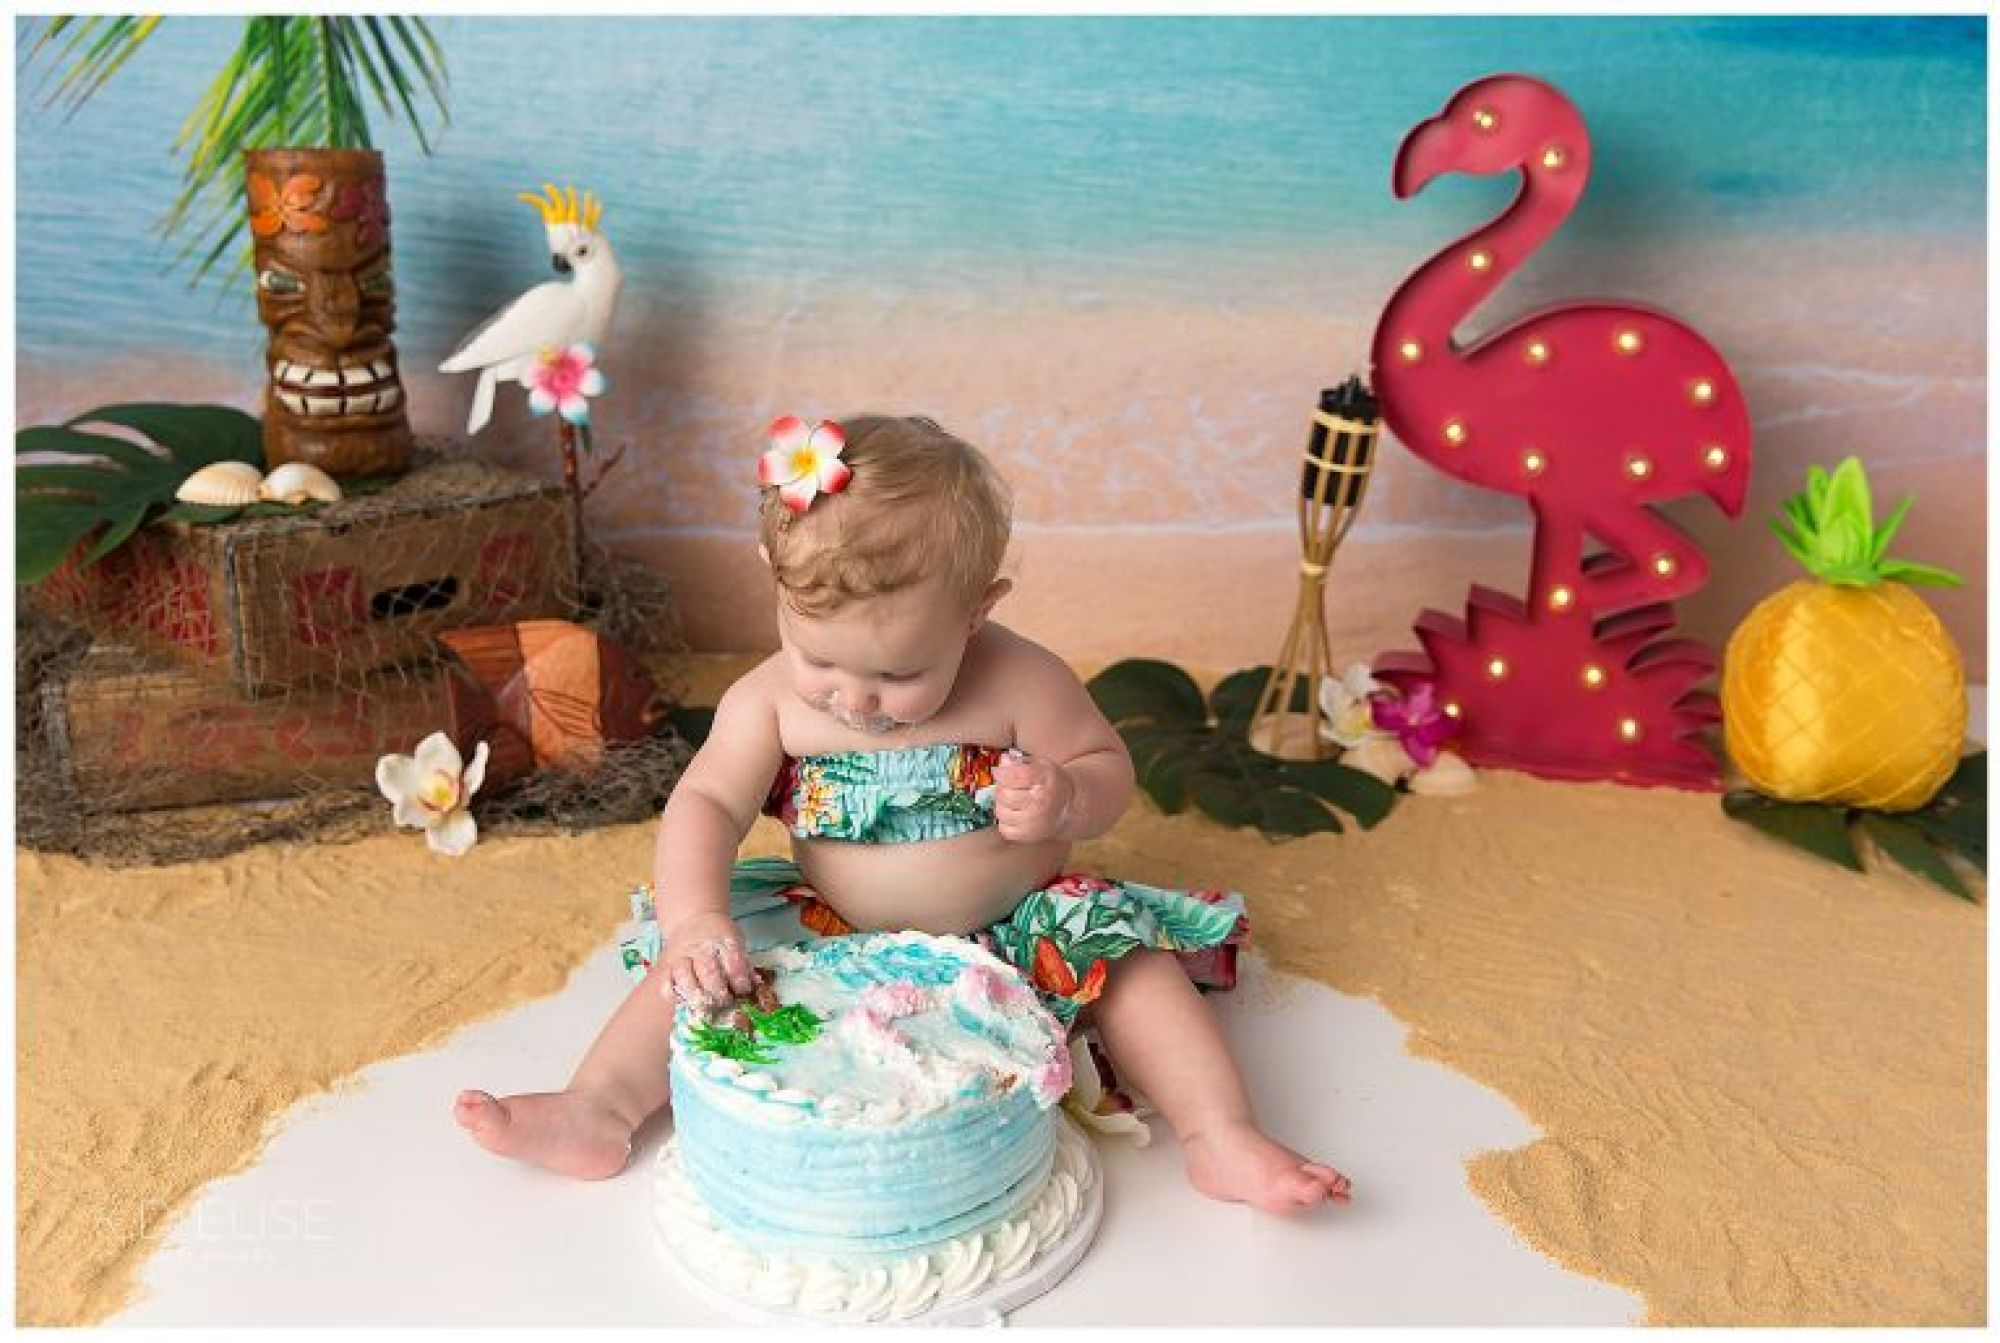 Baby girl eating cake during luau themed cake smash by Pueblo photographer K.D. Elise Photography.